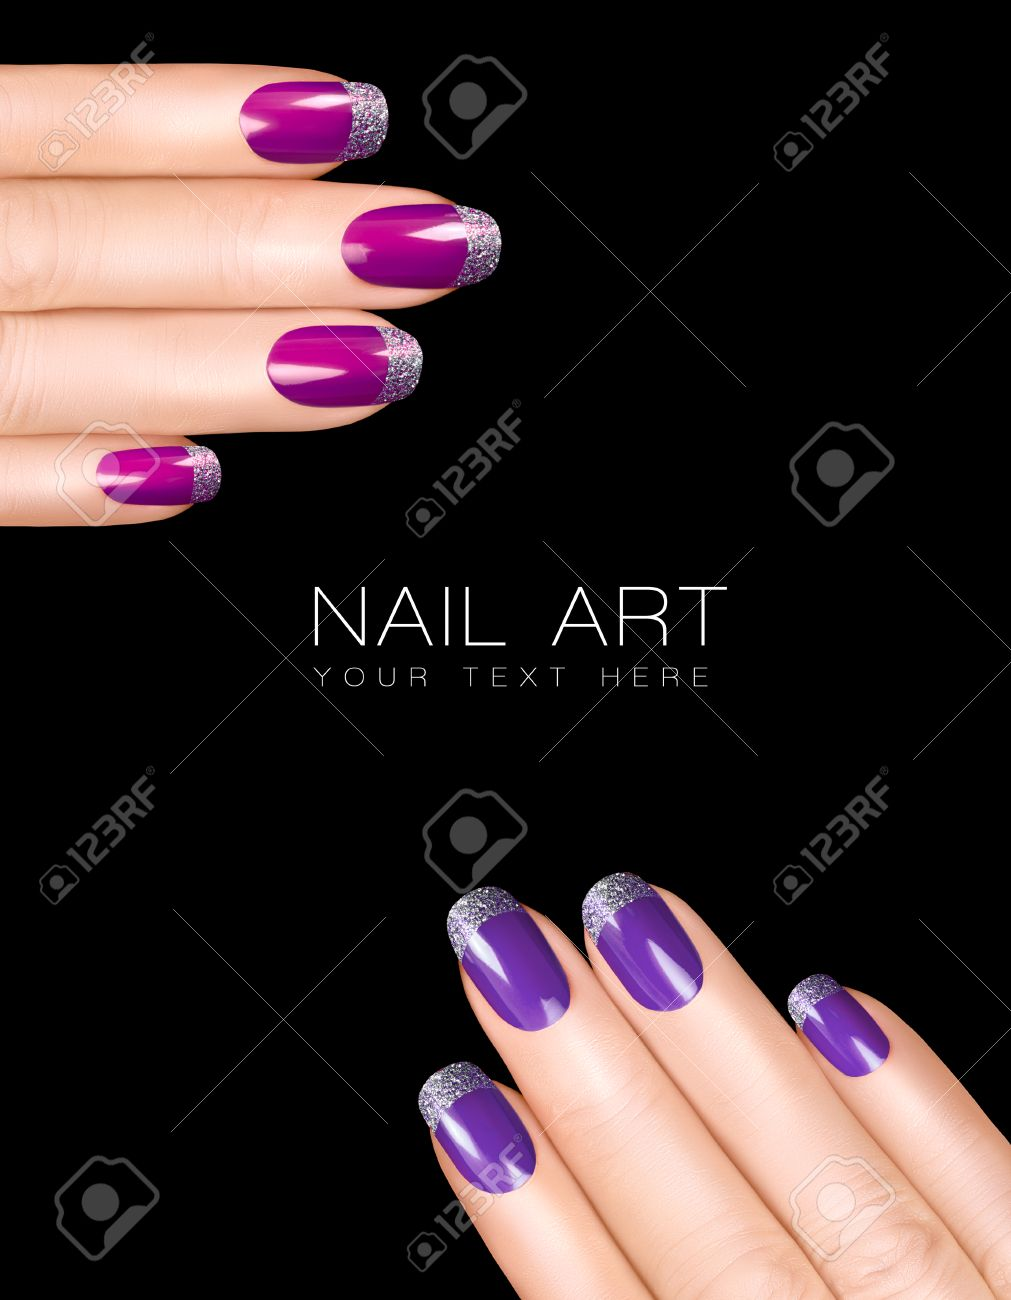 Holiday Nail Art. Luxury Purple Nail Polish With Glitter French ...